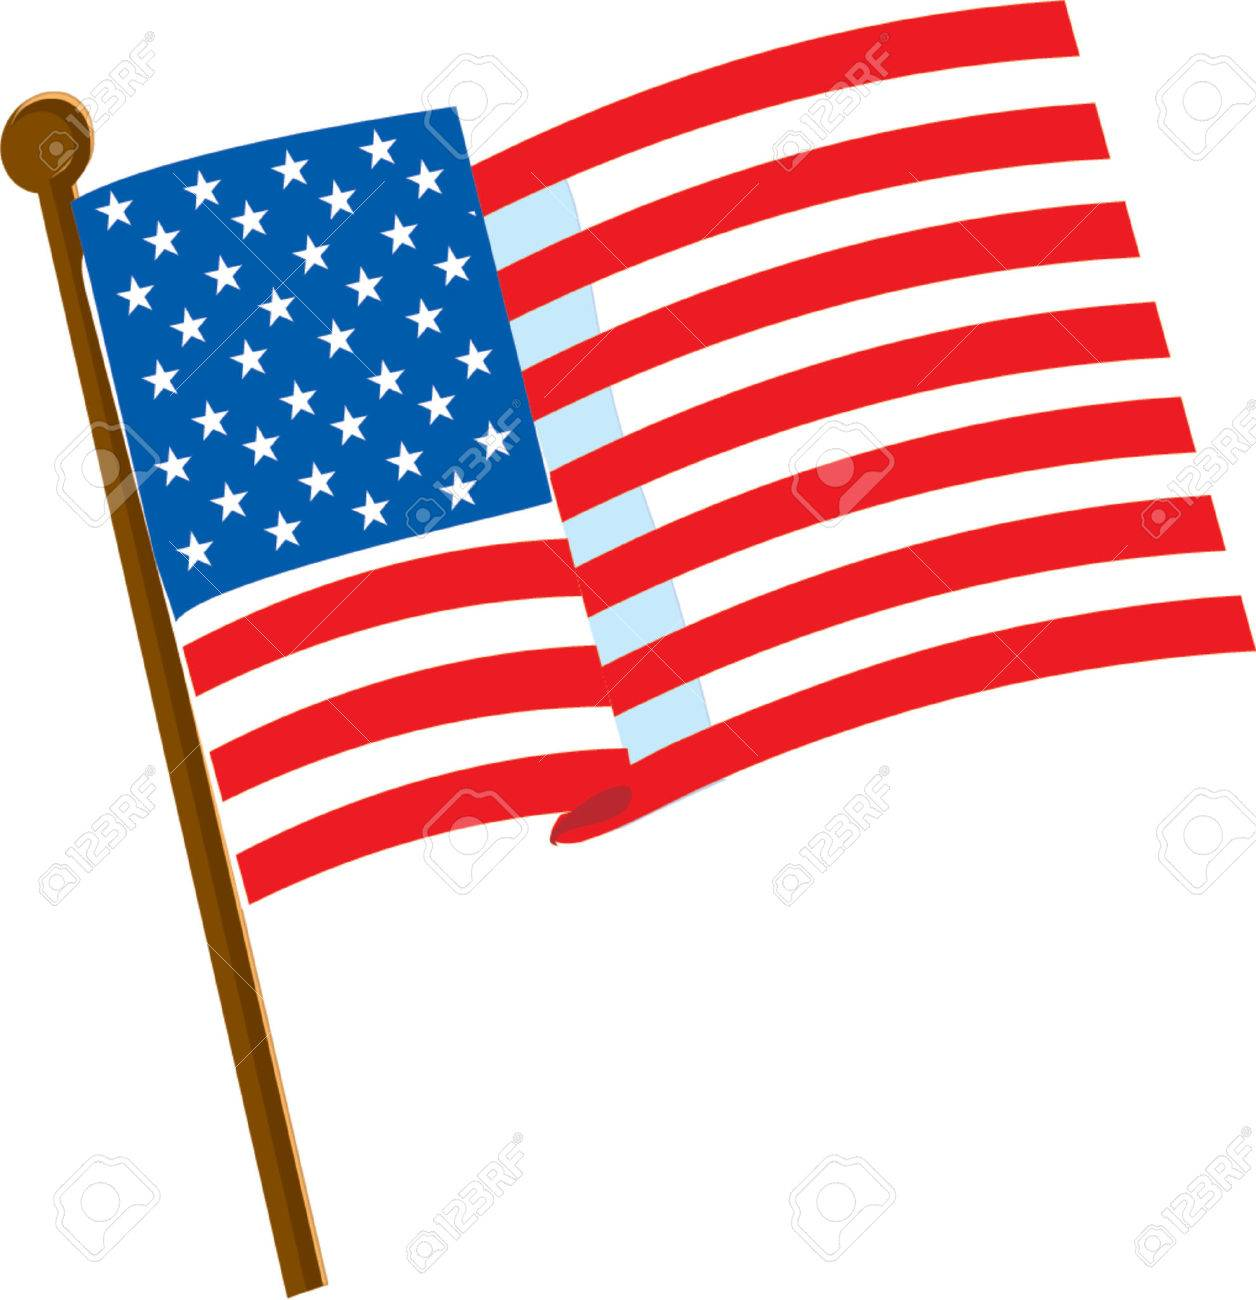 hight resolution of american flag on a white background with 50 stars stock vector 866673